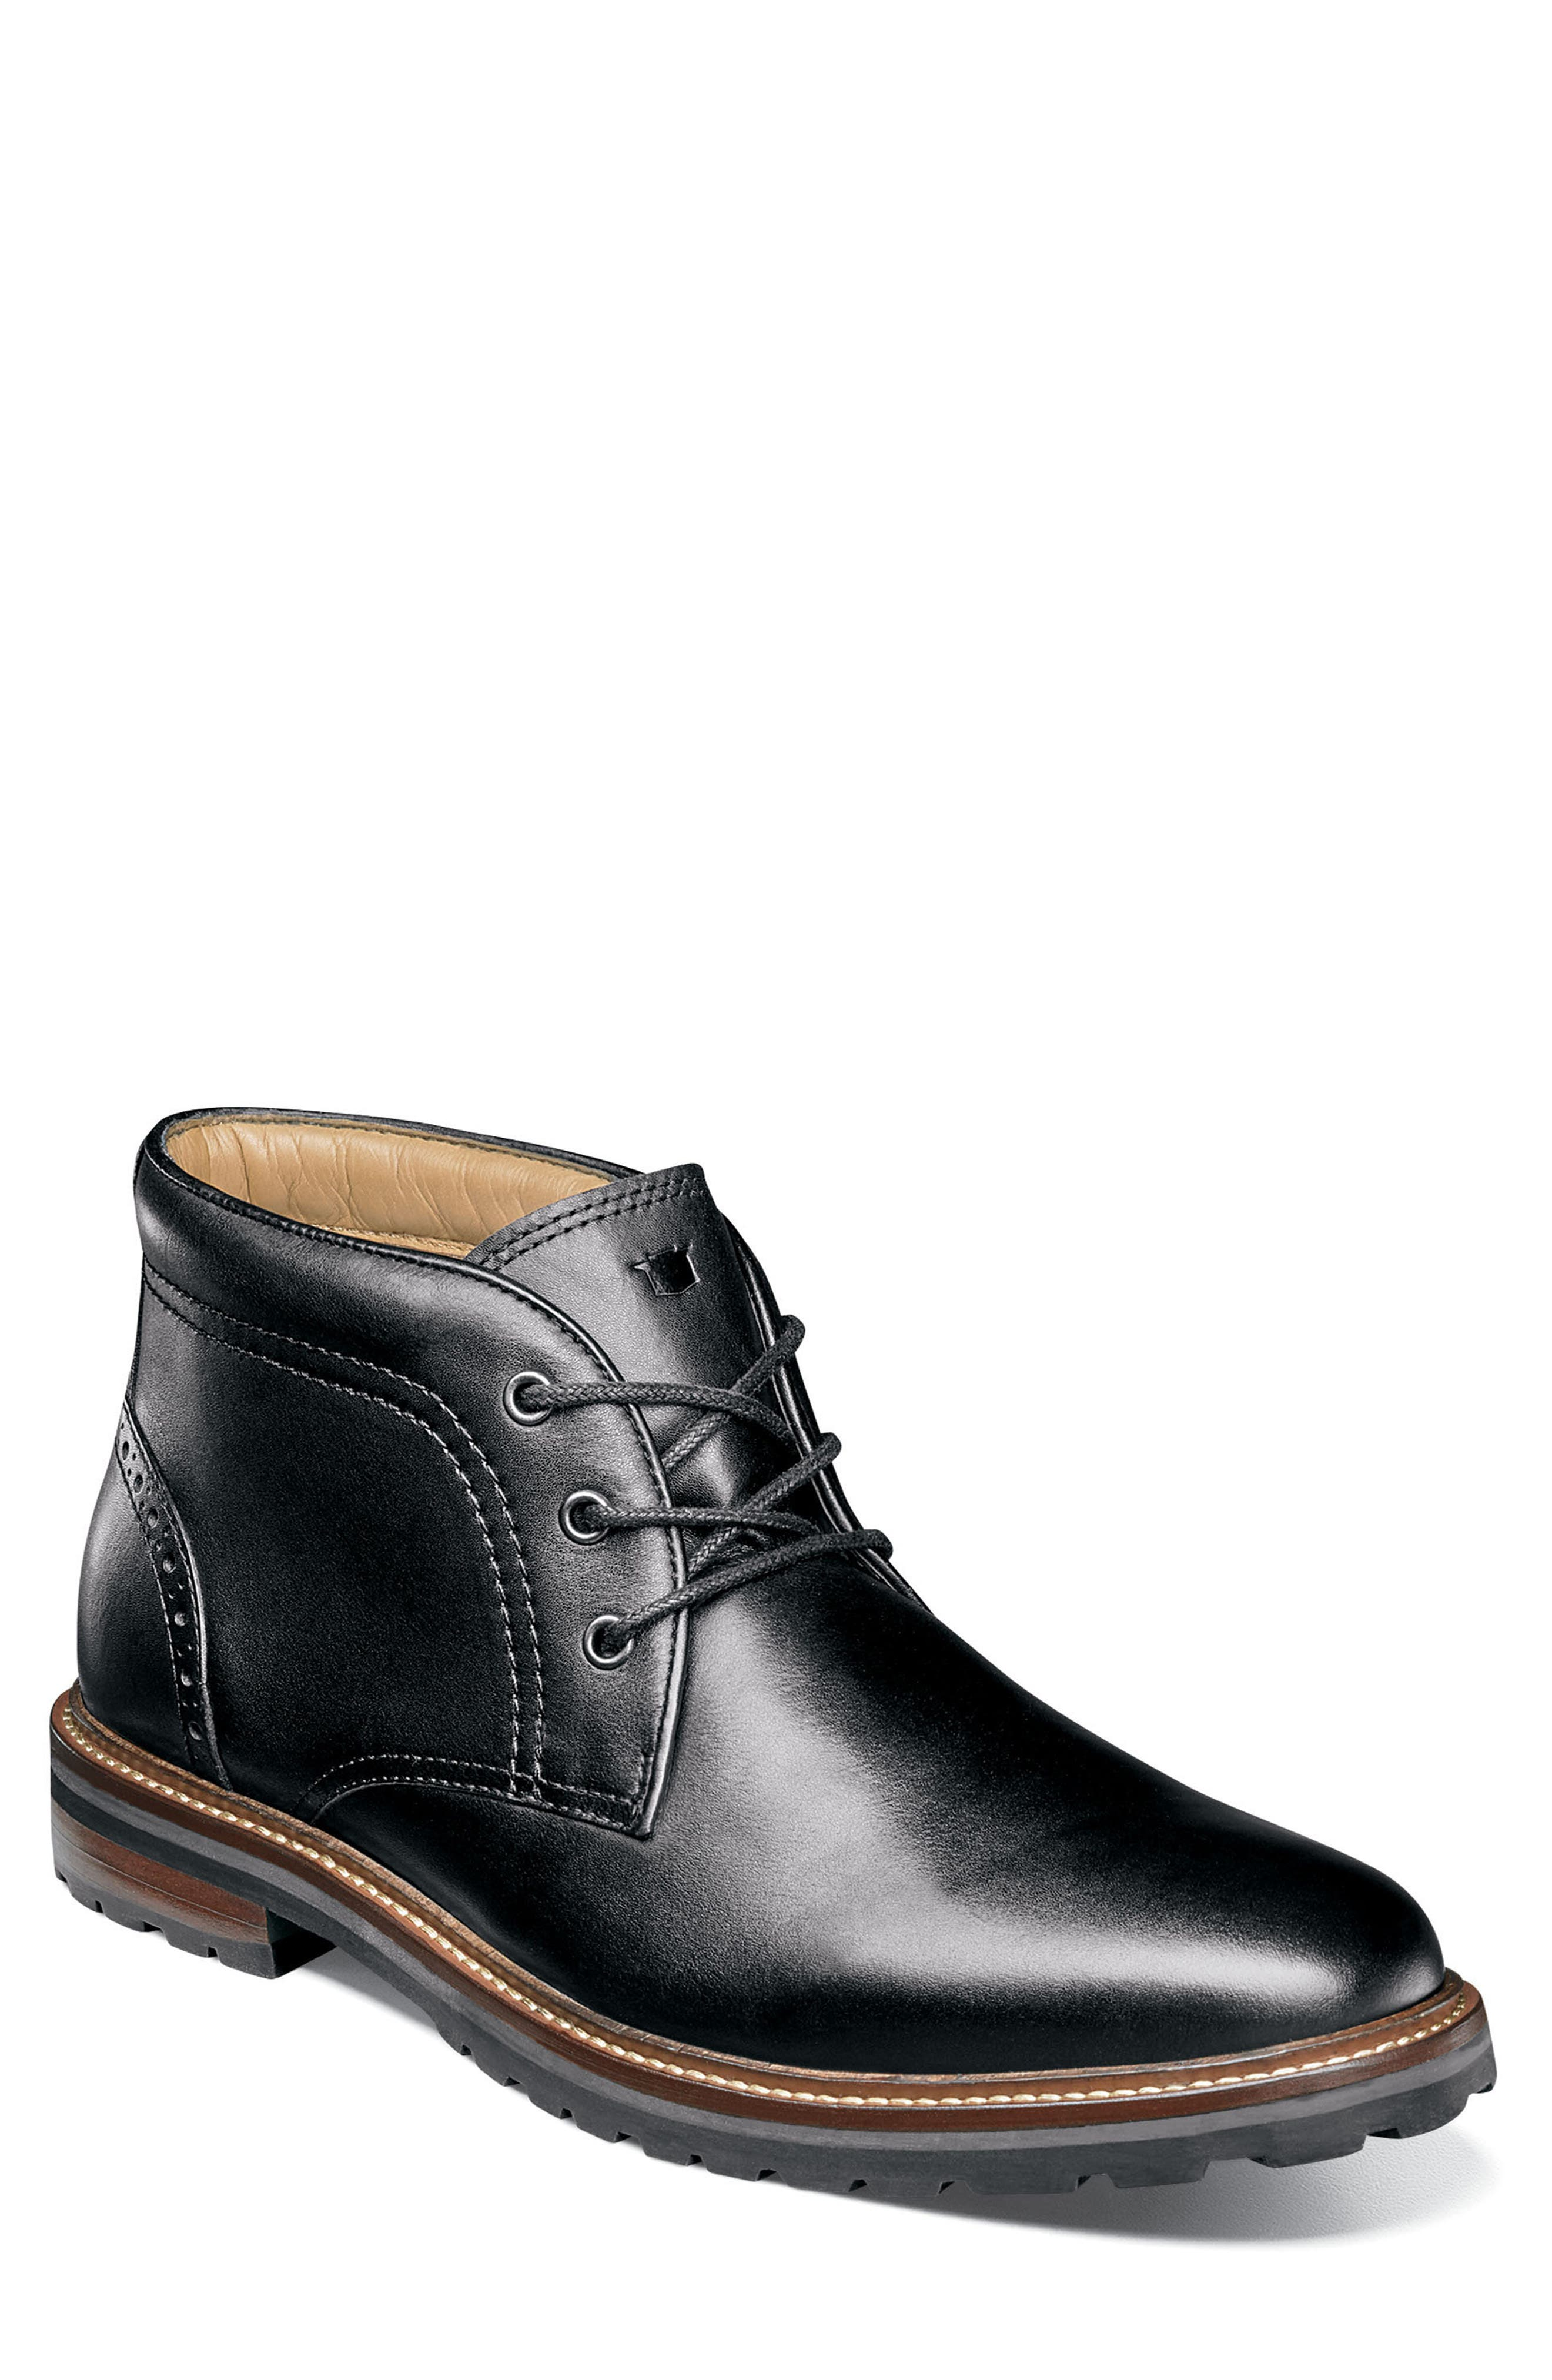 Estabrook Lugged Chukka Boot,                         Main,                         color, BLACK LEATHER